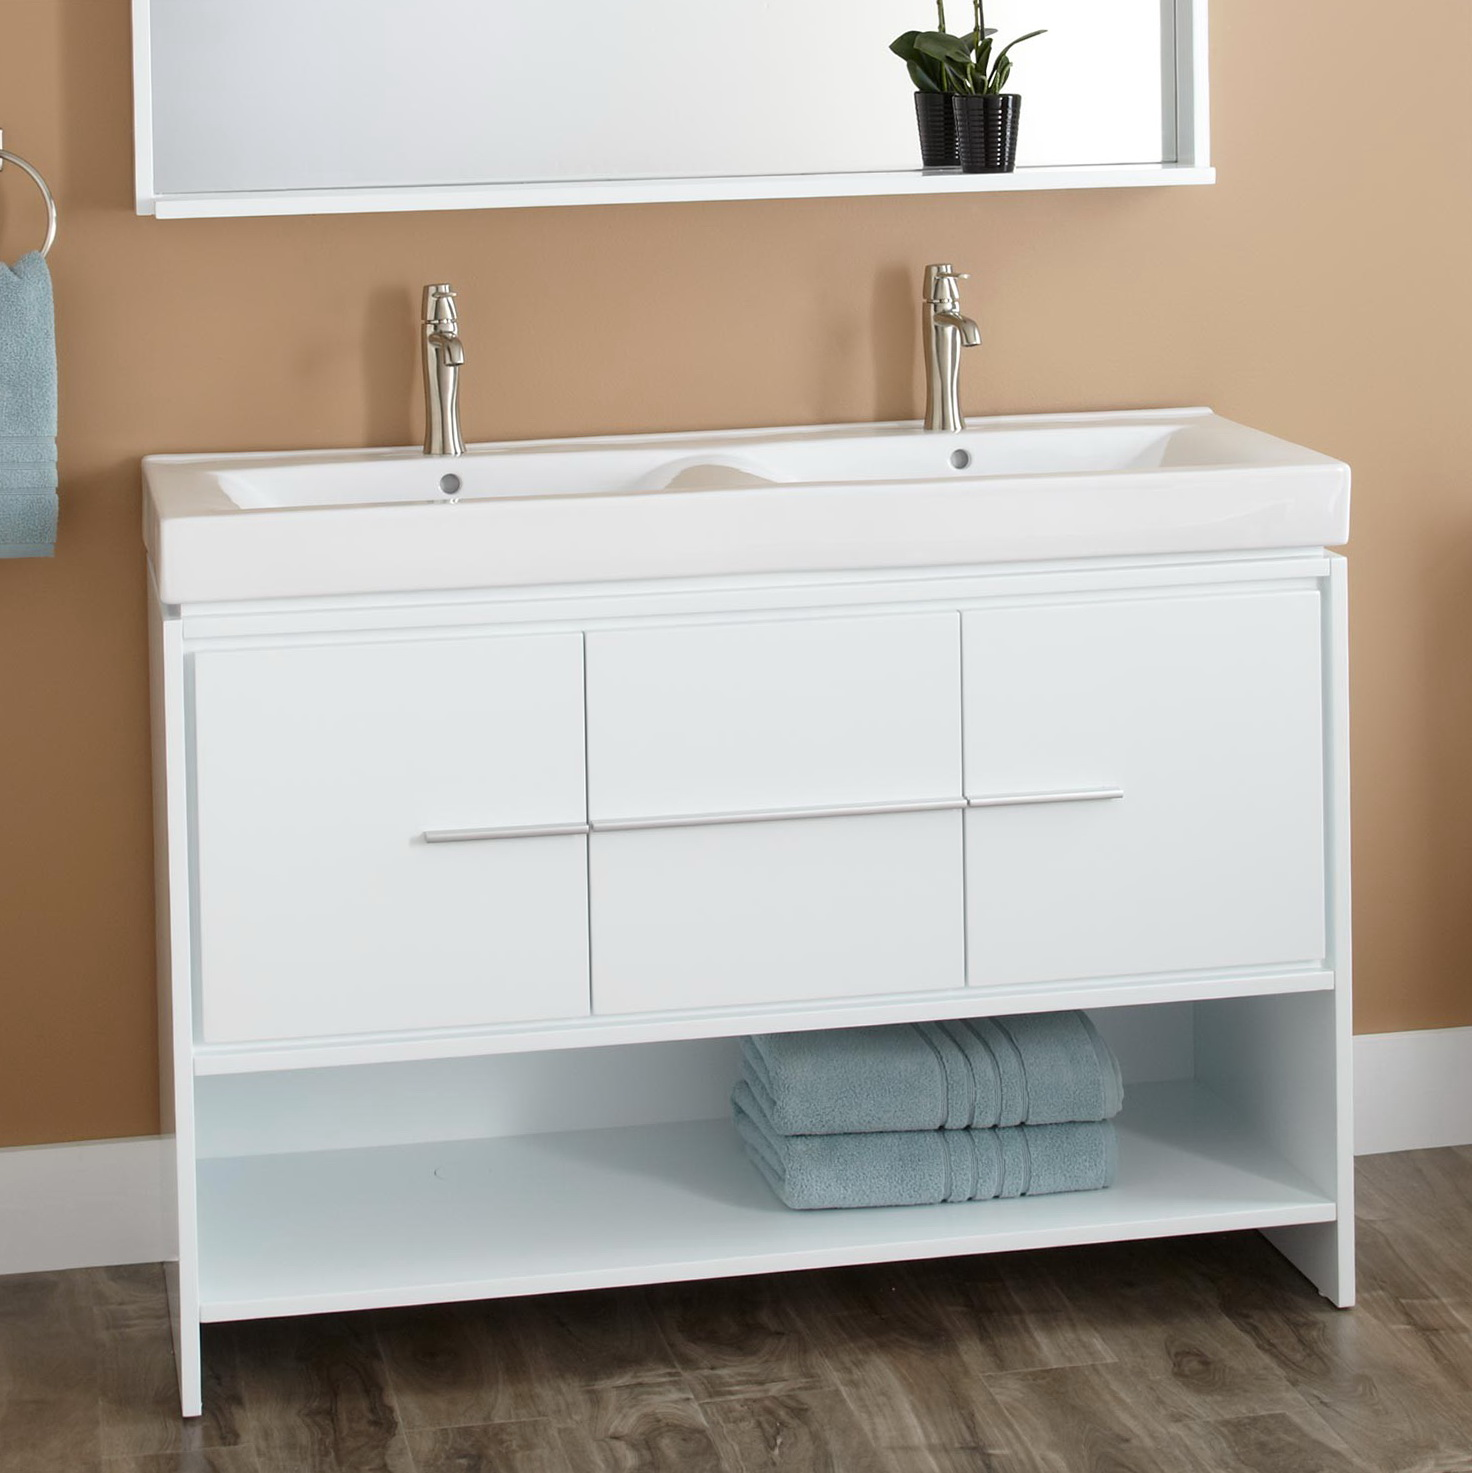 30 Inch Bathroom Vanity Without Top